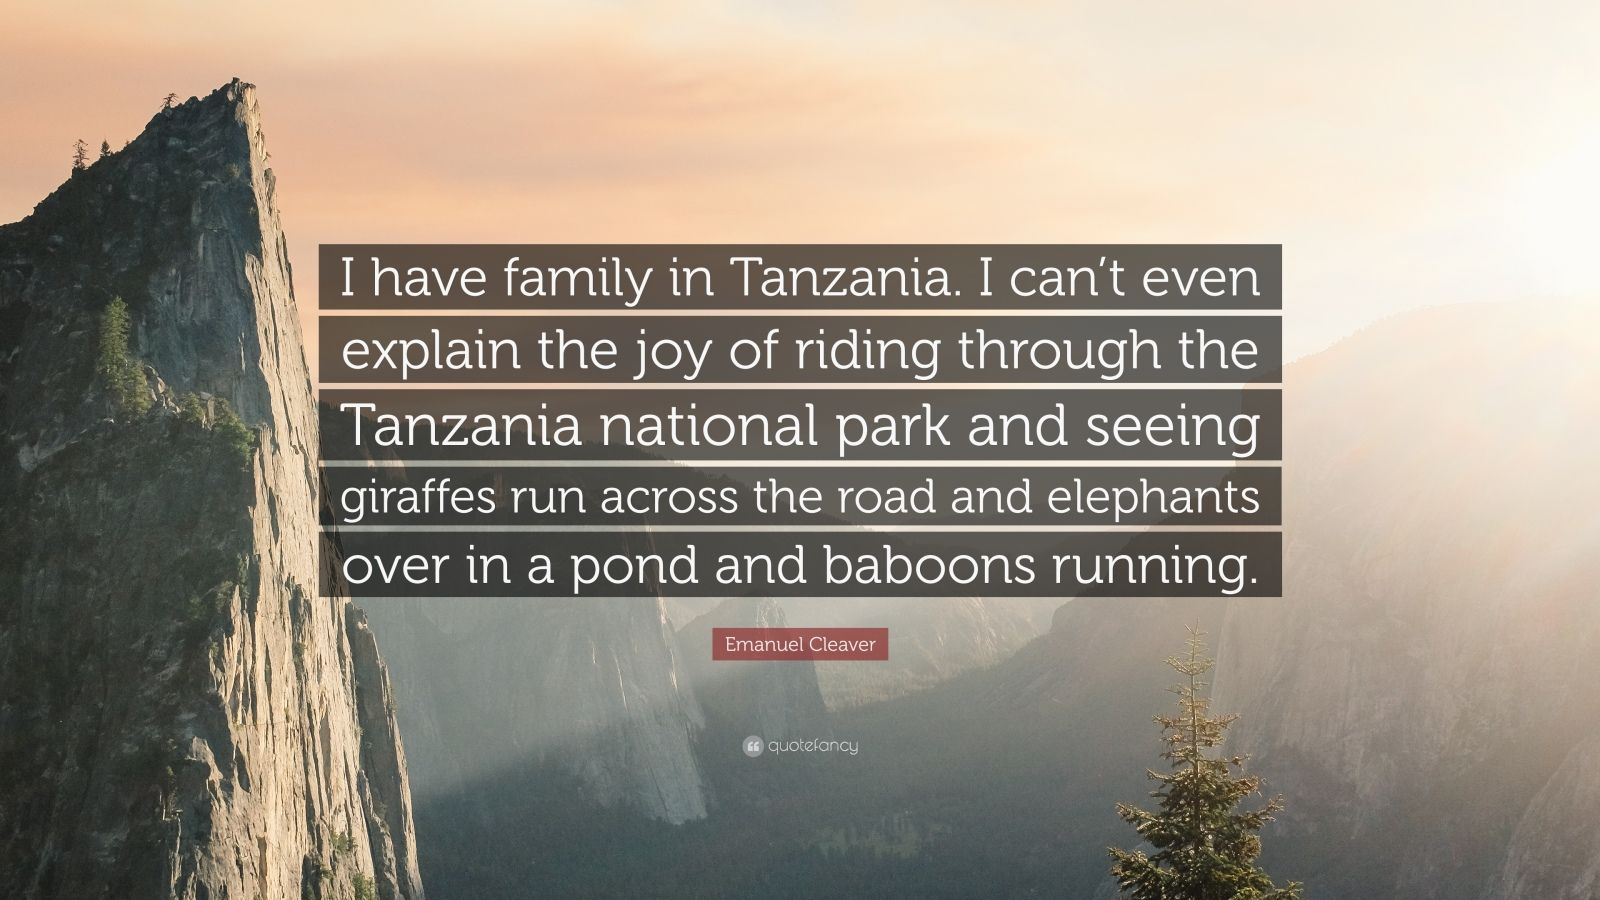 """Emanuel Cleaver Quote: """"I have family in Tanzania. I can't even explain the joy of riding through the Tanzania national park and seeing giraffes run across the road and elephants over in a pond and baboons running."""""""